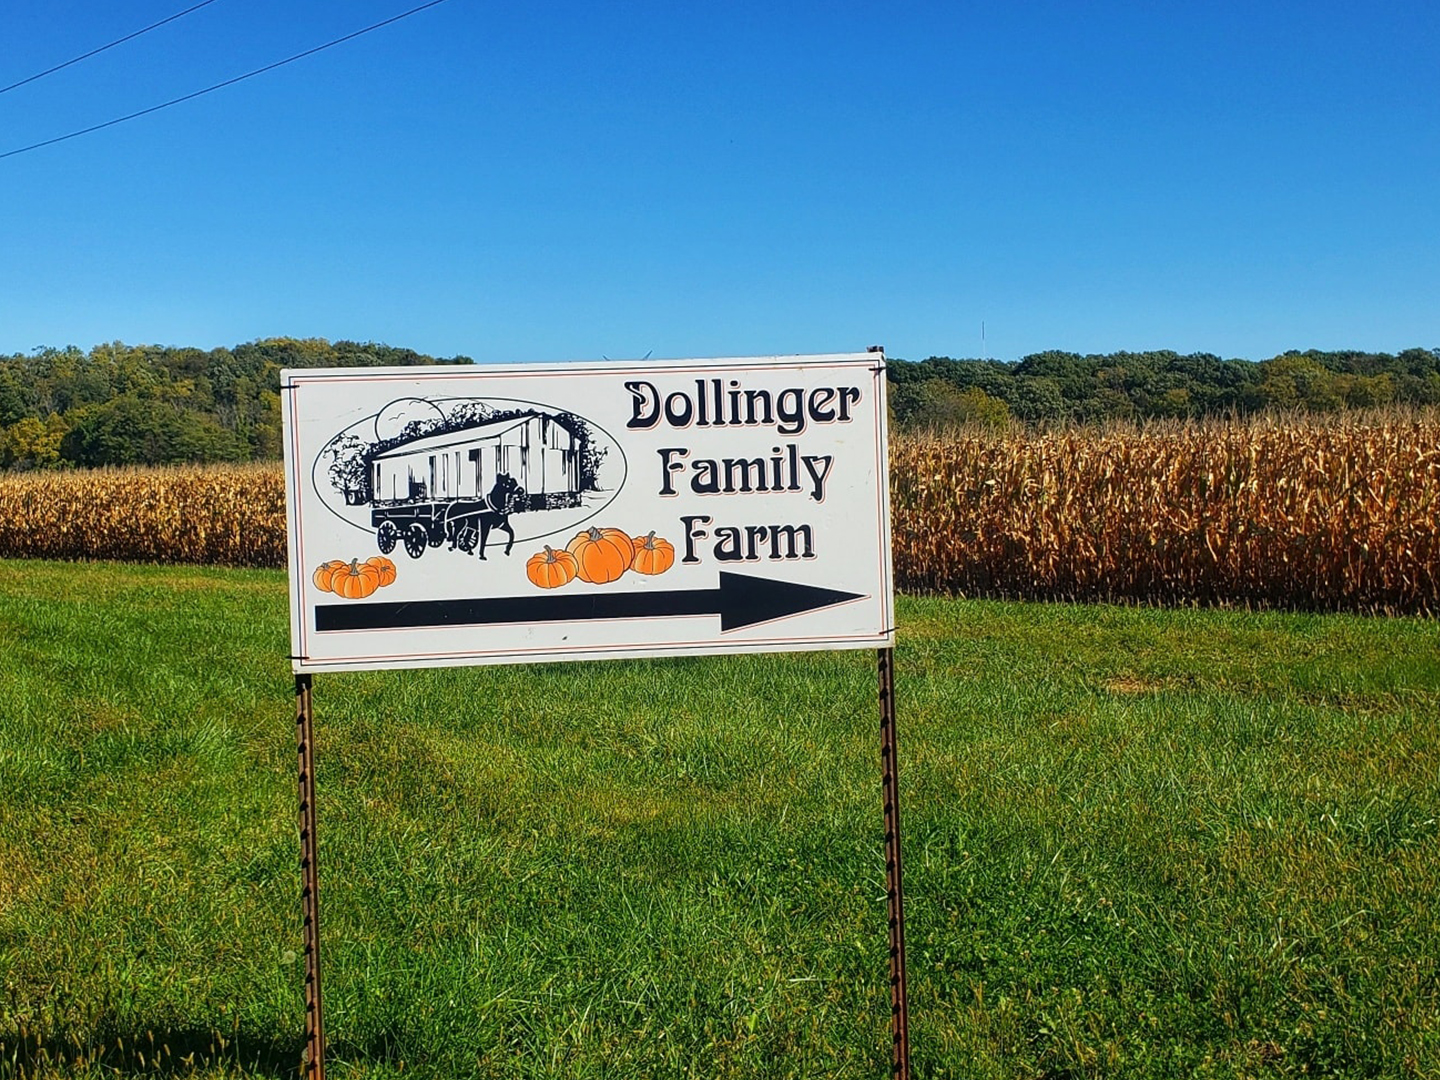 Welcome sign at dollinger farm with an arrowing pointing where to go